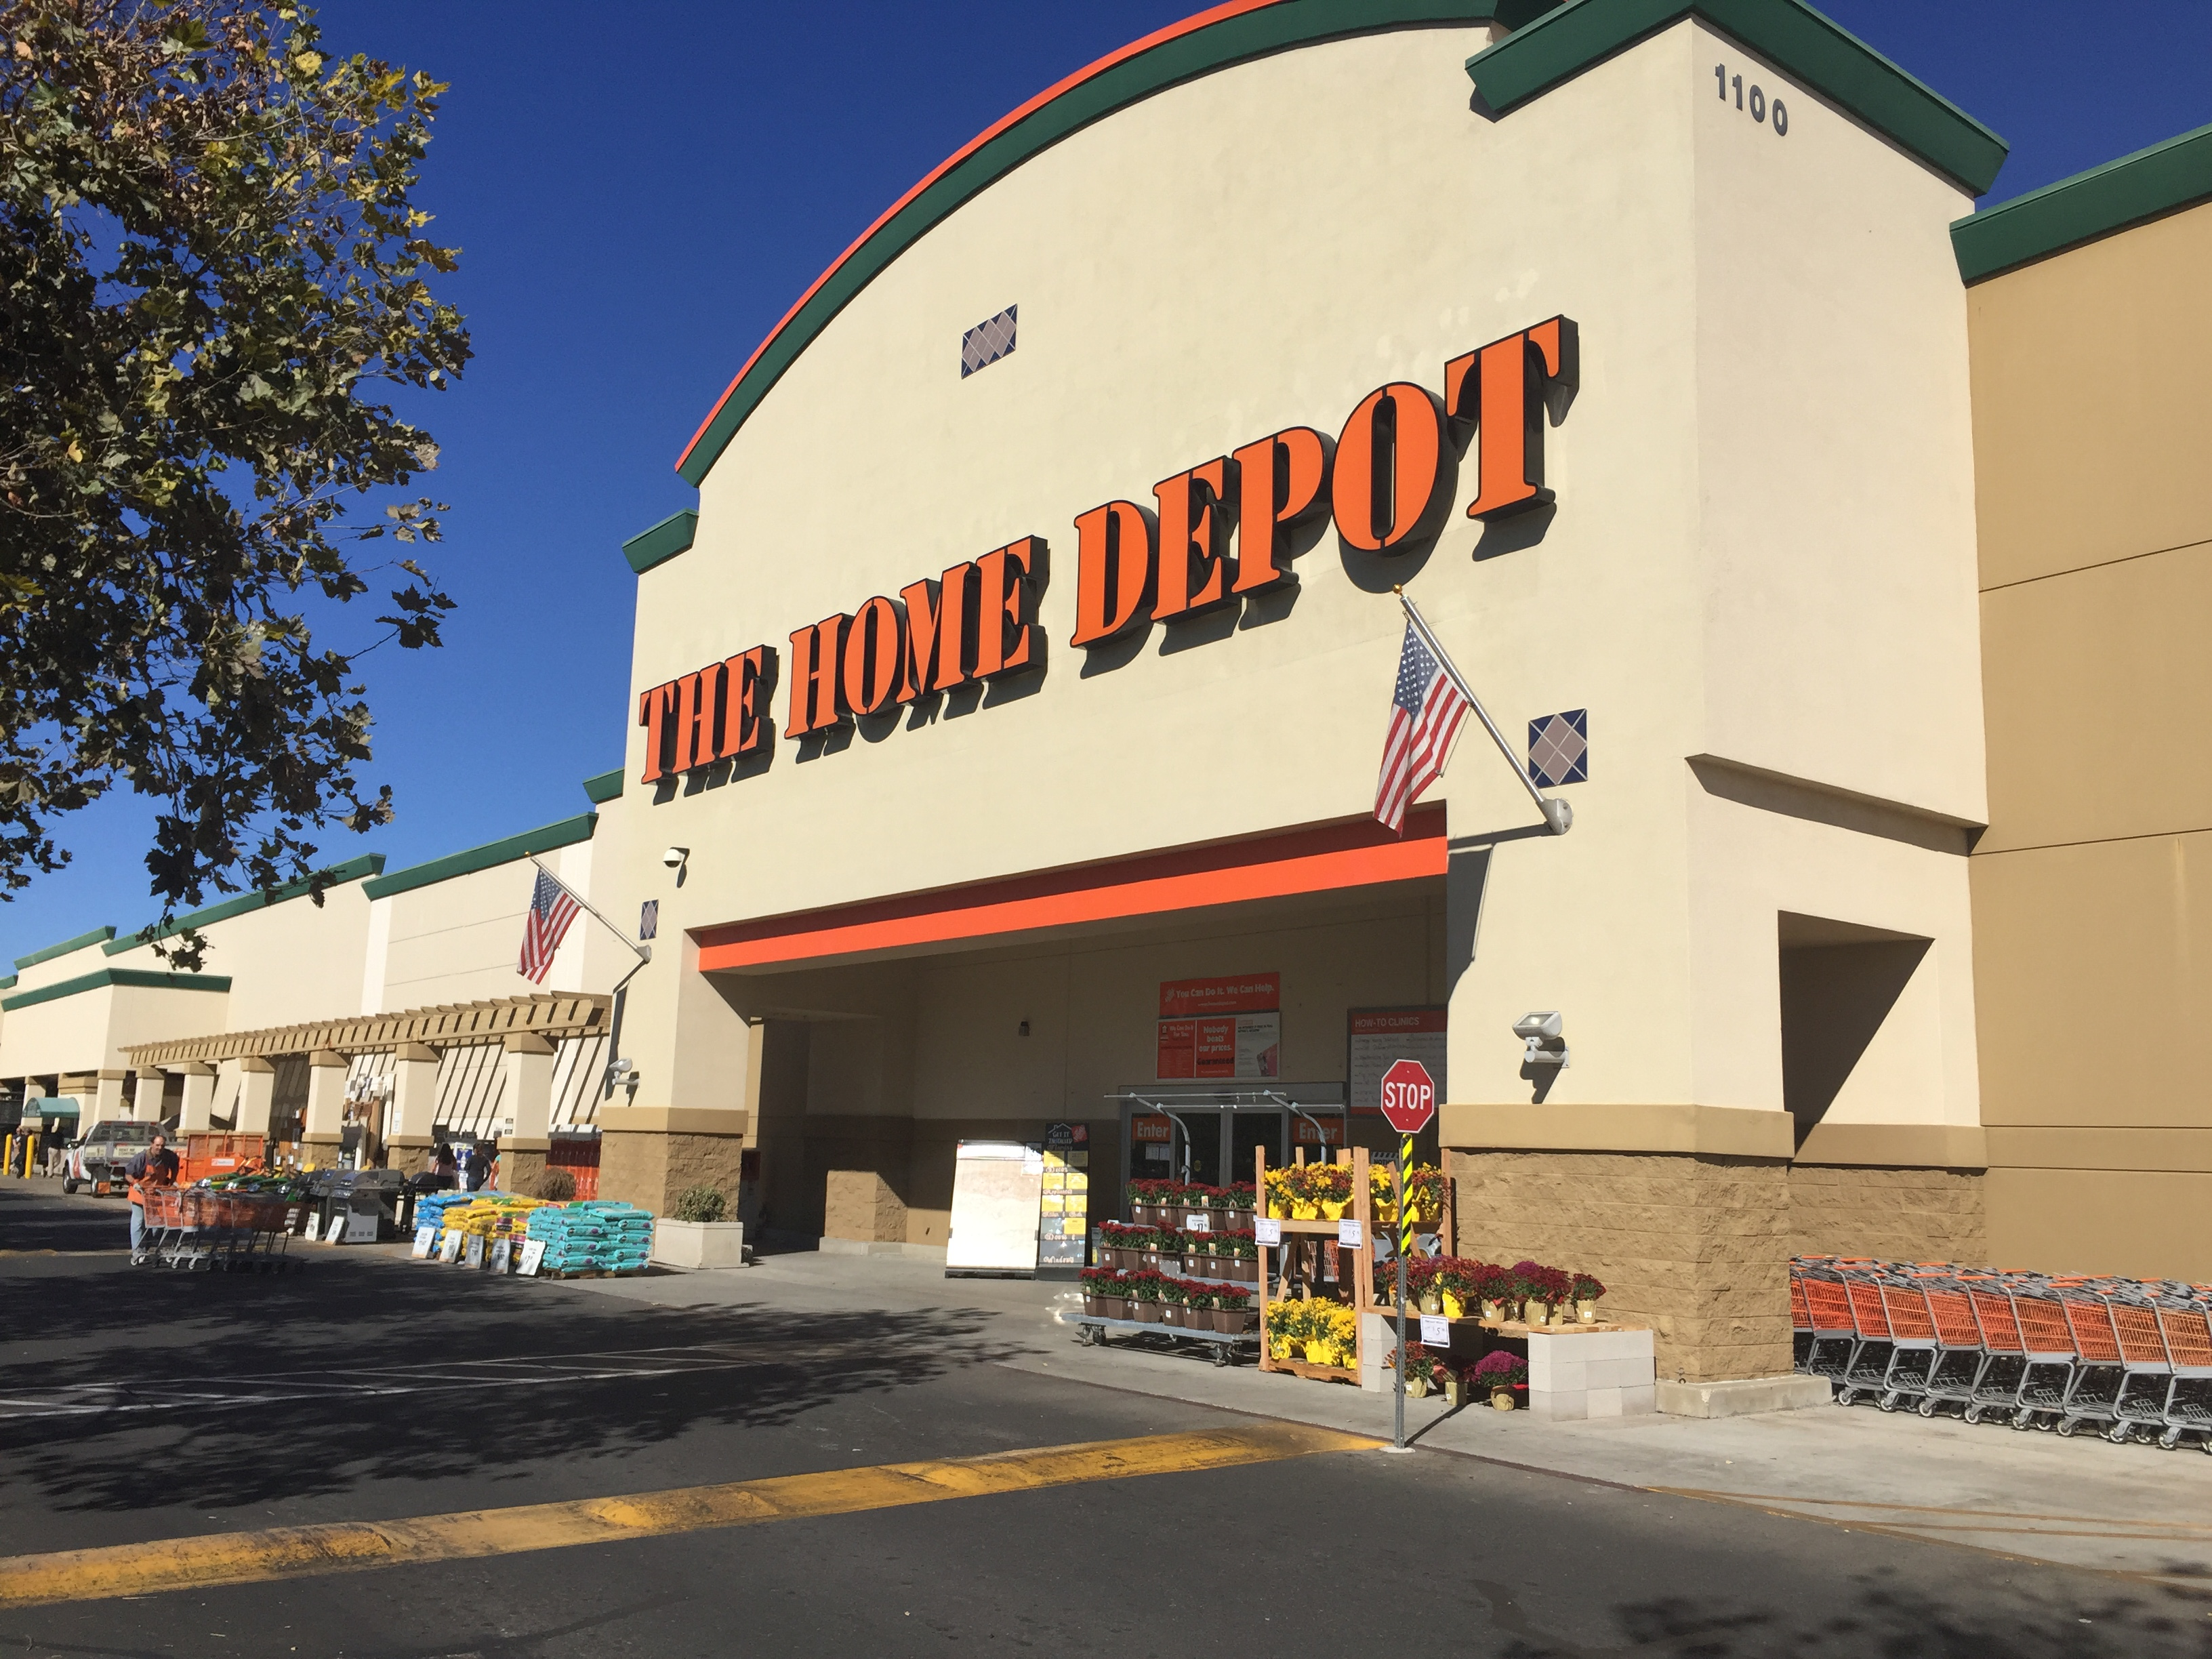 The home depot in yuba city ca whitepages for Furniture yuba city